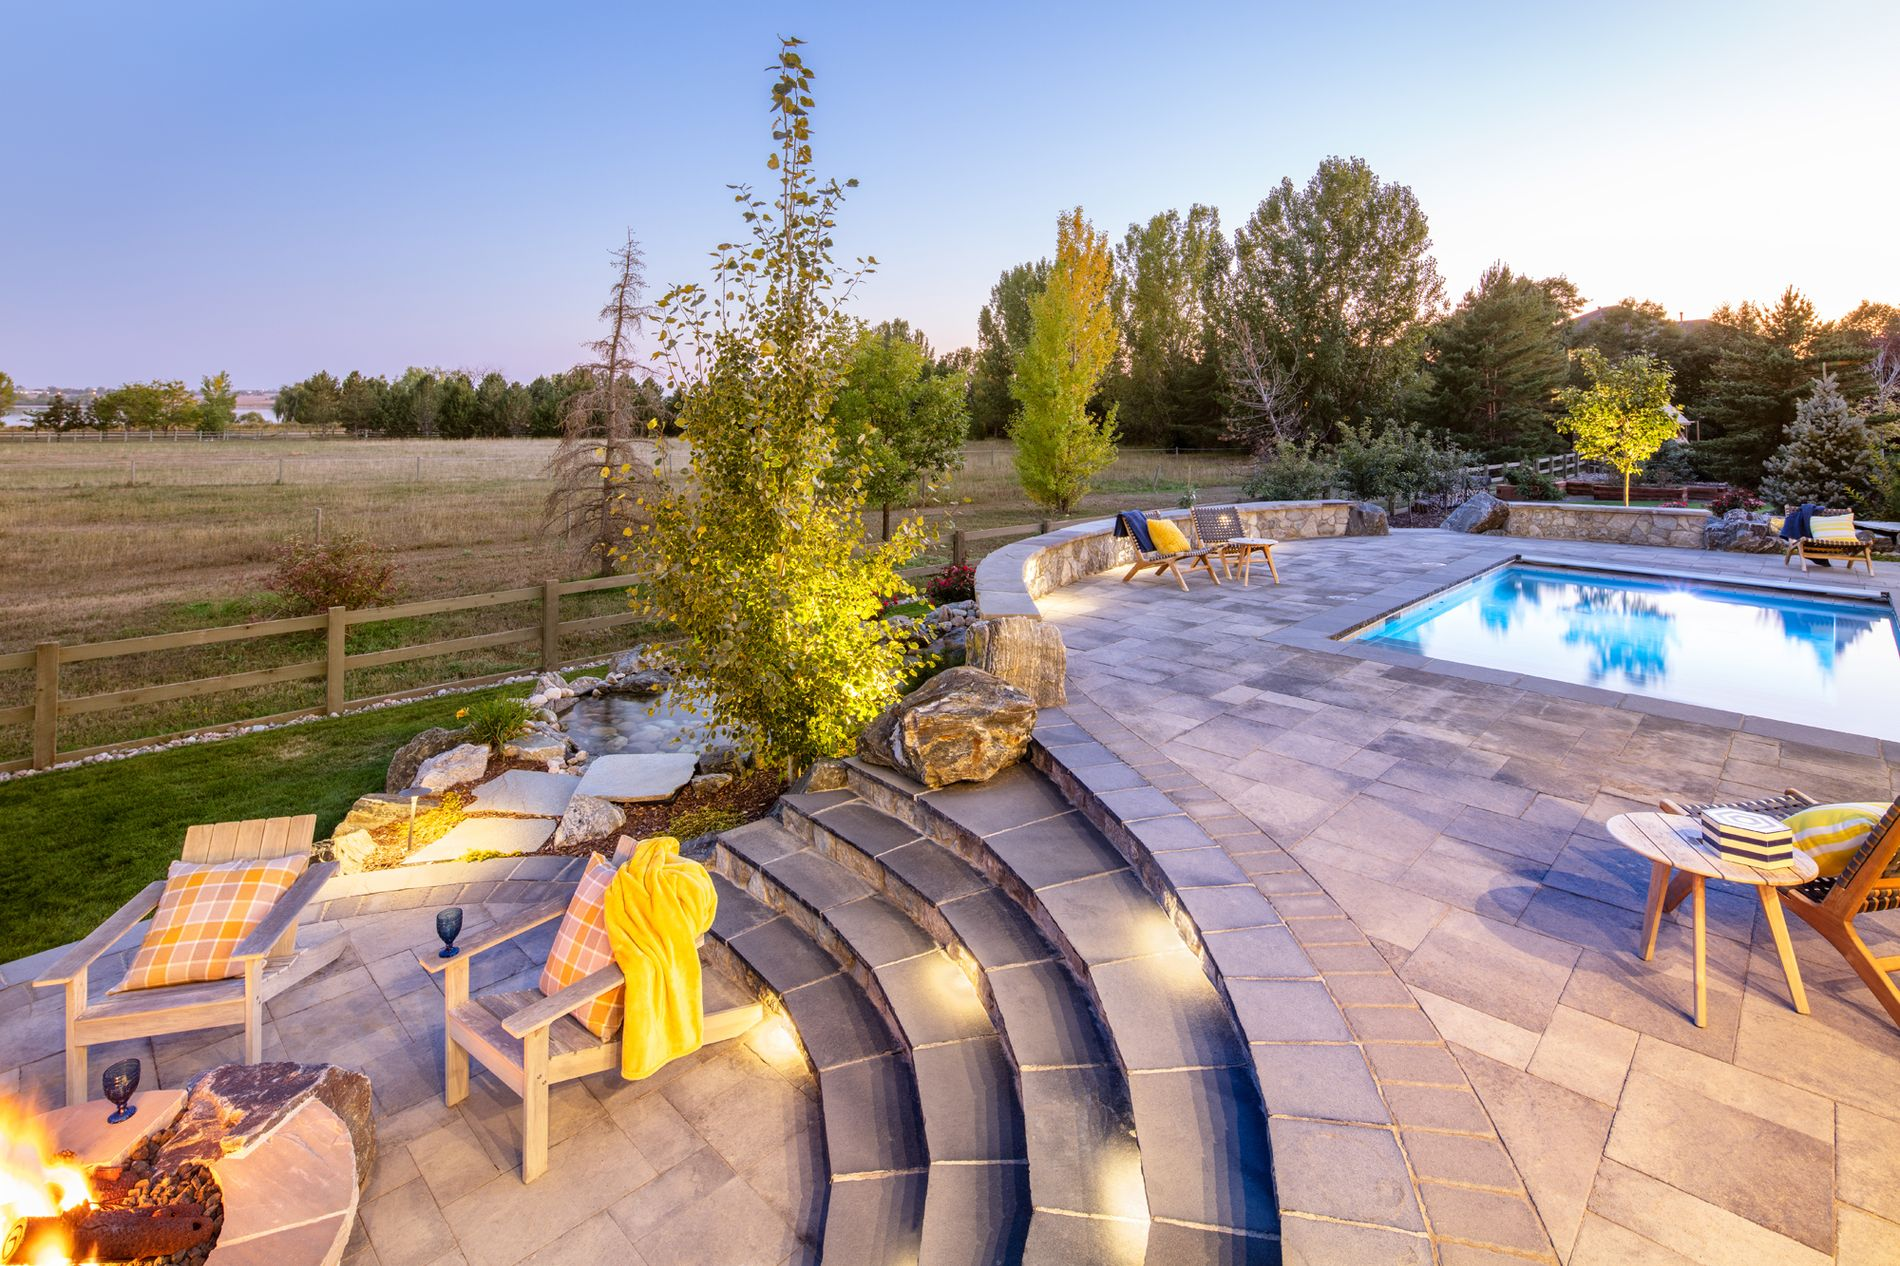 Swimming pool with paver patio and stairs leading to fire pit